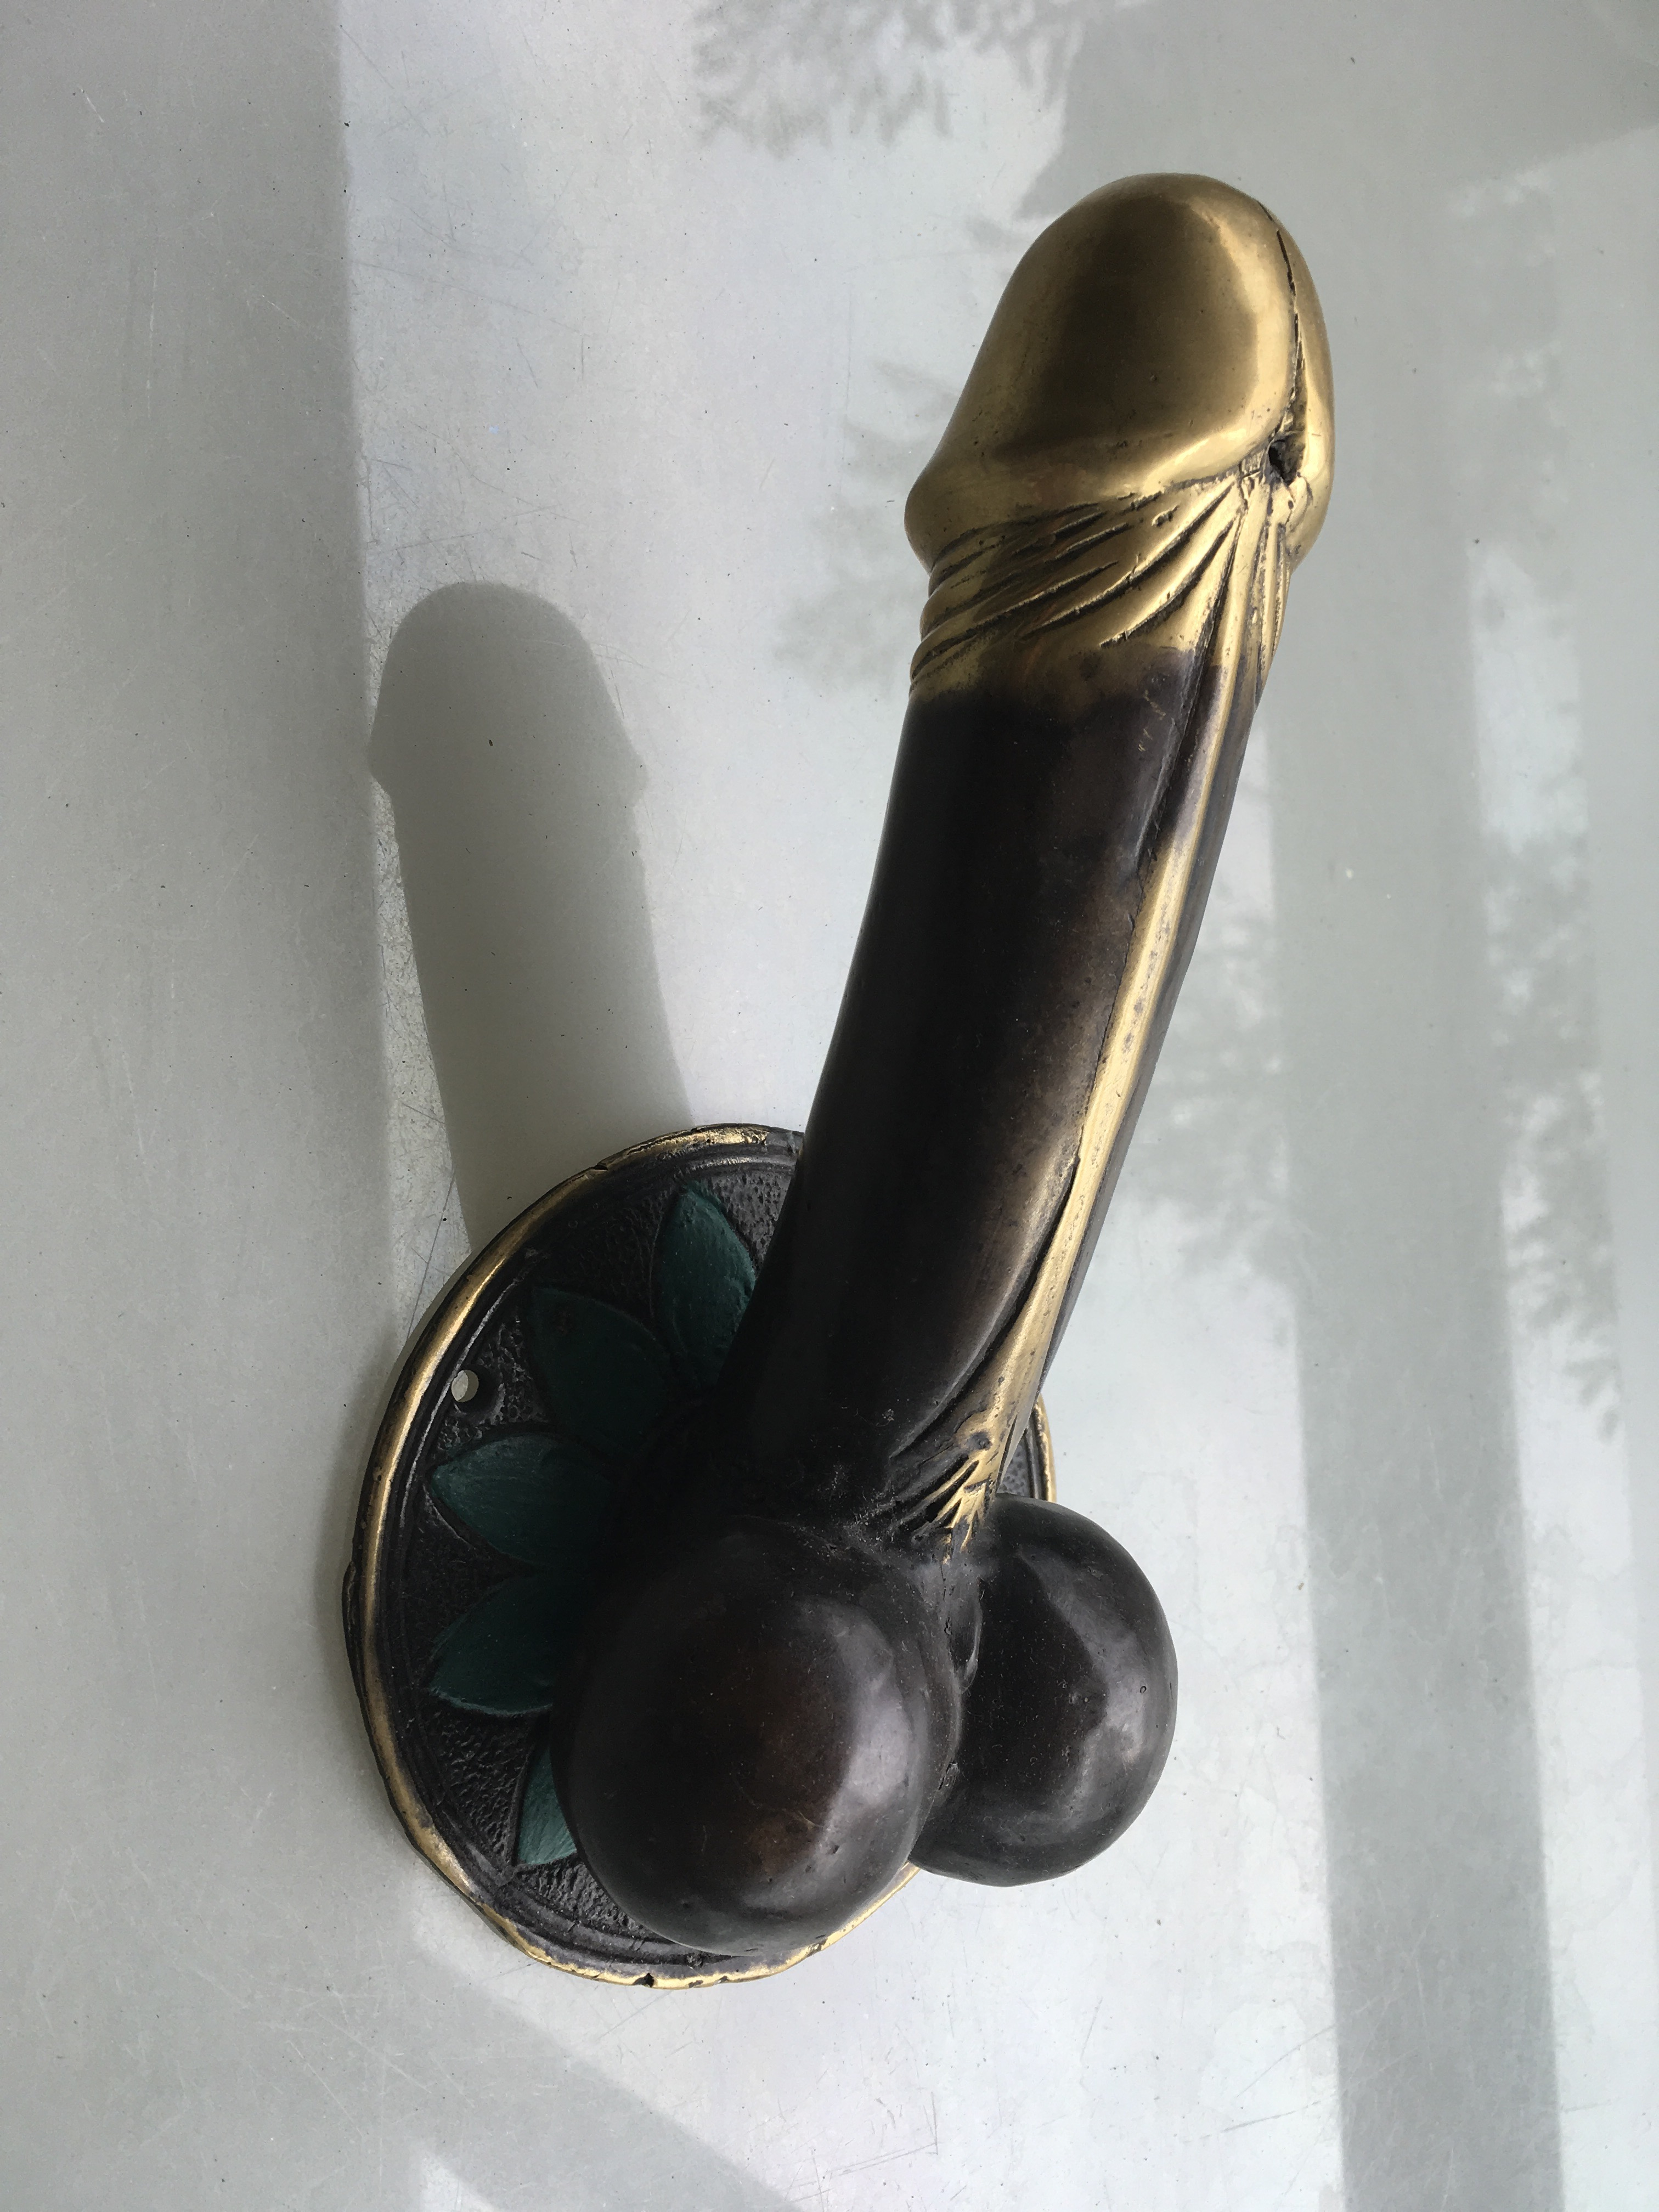 2 Large Penis 23 Cm Door Pull Or Hook Hand Made100 Brass